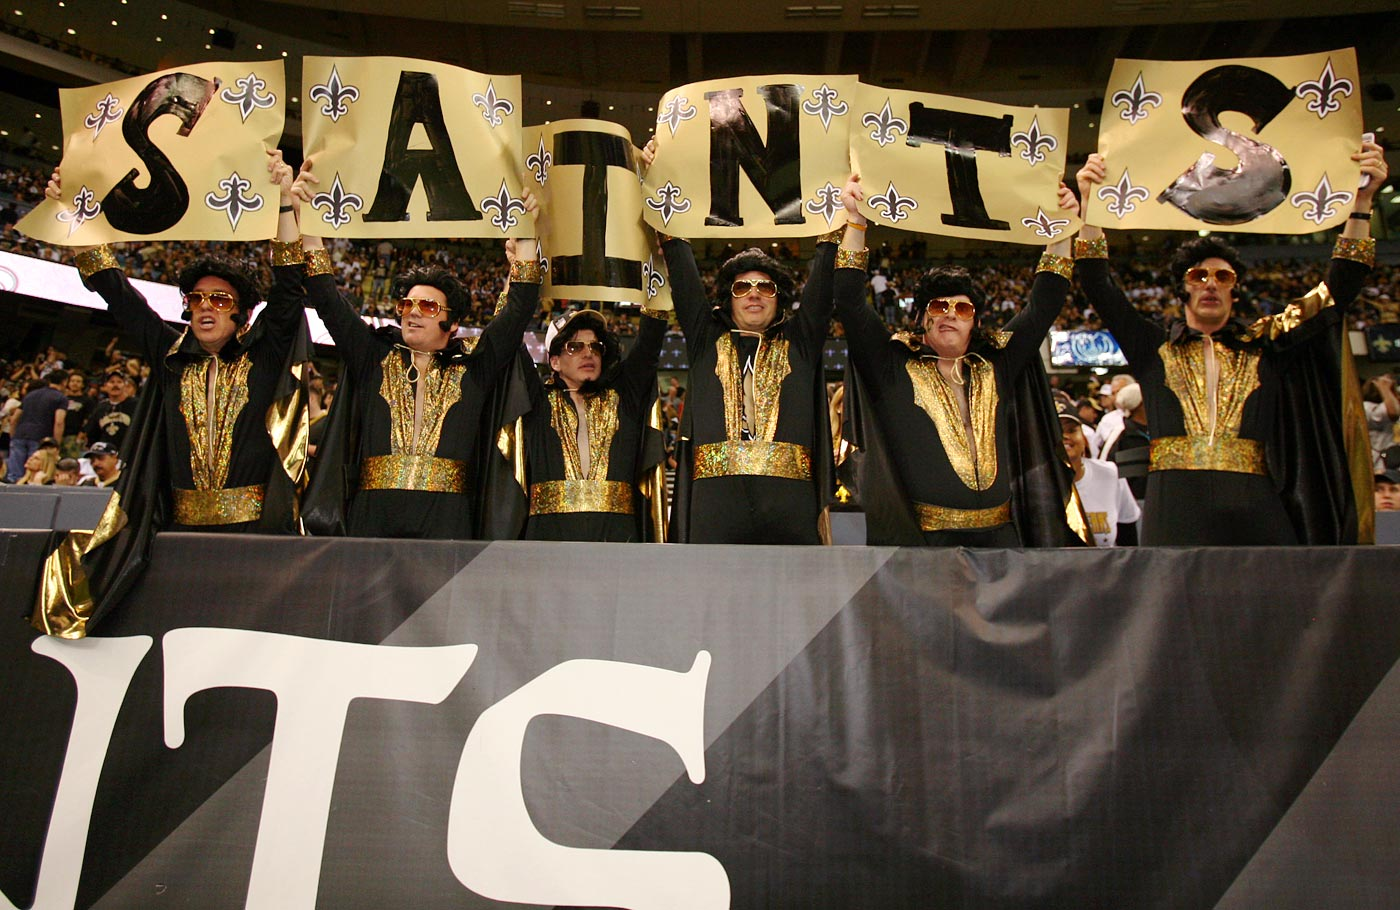 Saints and Elvis fans attend the New Orleans Saints Divisional Playoff game against the Philadelphia Eagles at the Superdome in New Orleans on Jan. 13, 2007.